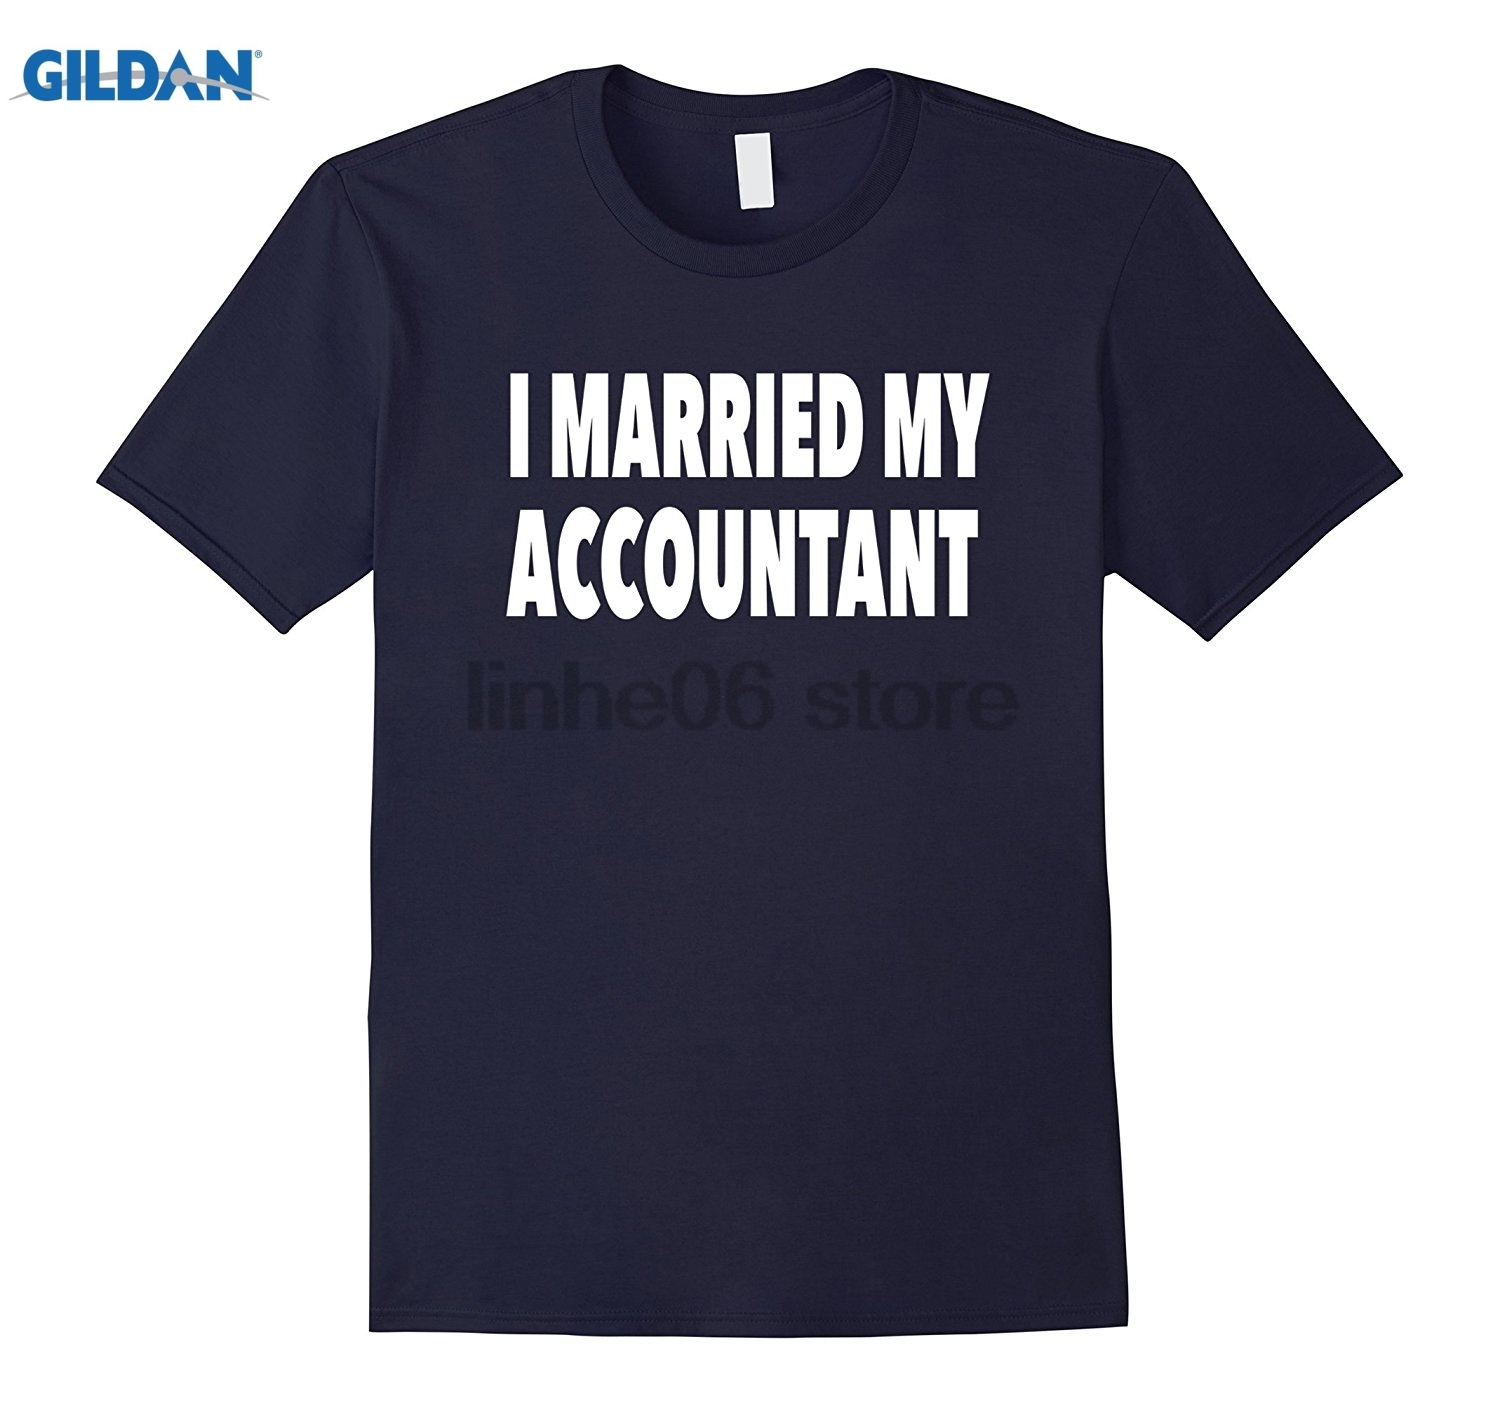 GILDAN I Married My Accountant